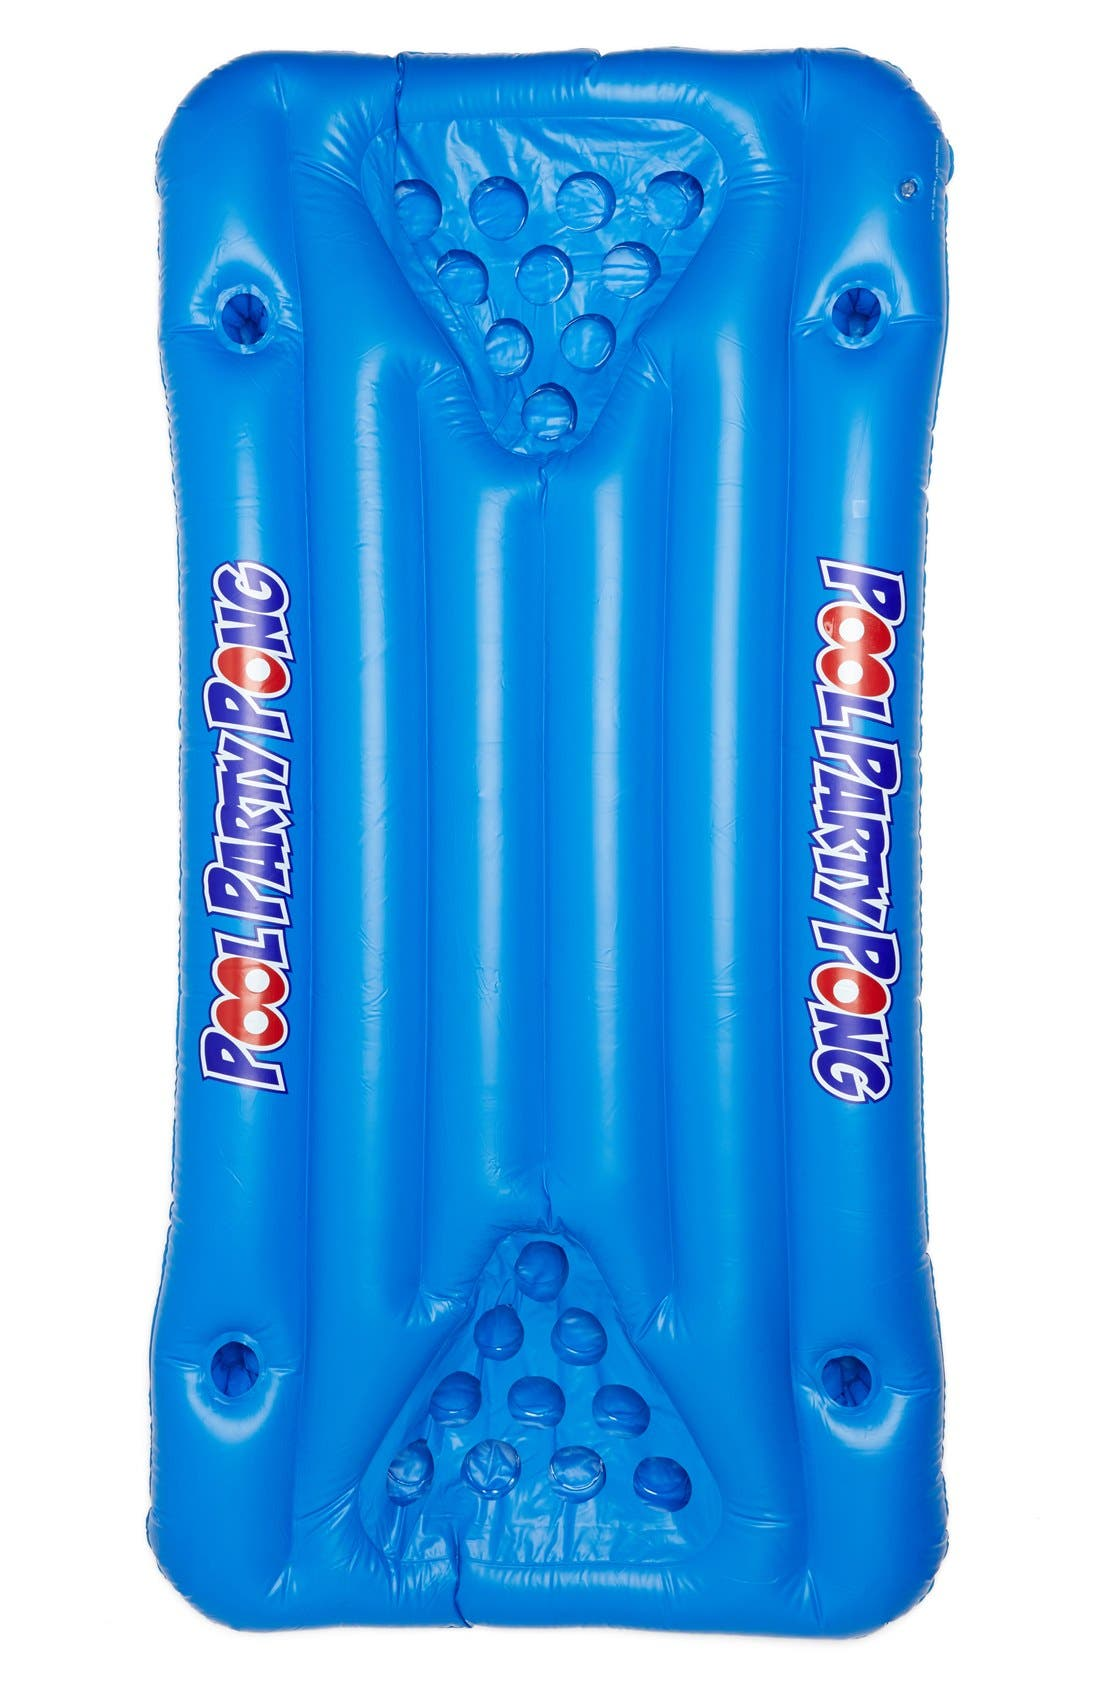 Main Image - Big Mouth Toys 'Pool Party Pong' Pool Float